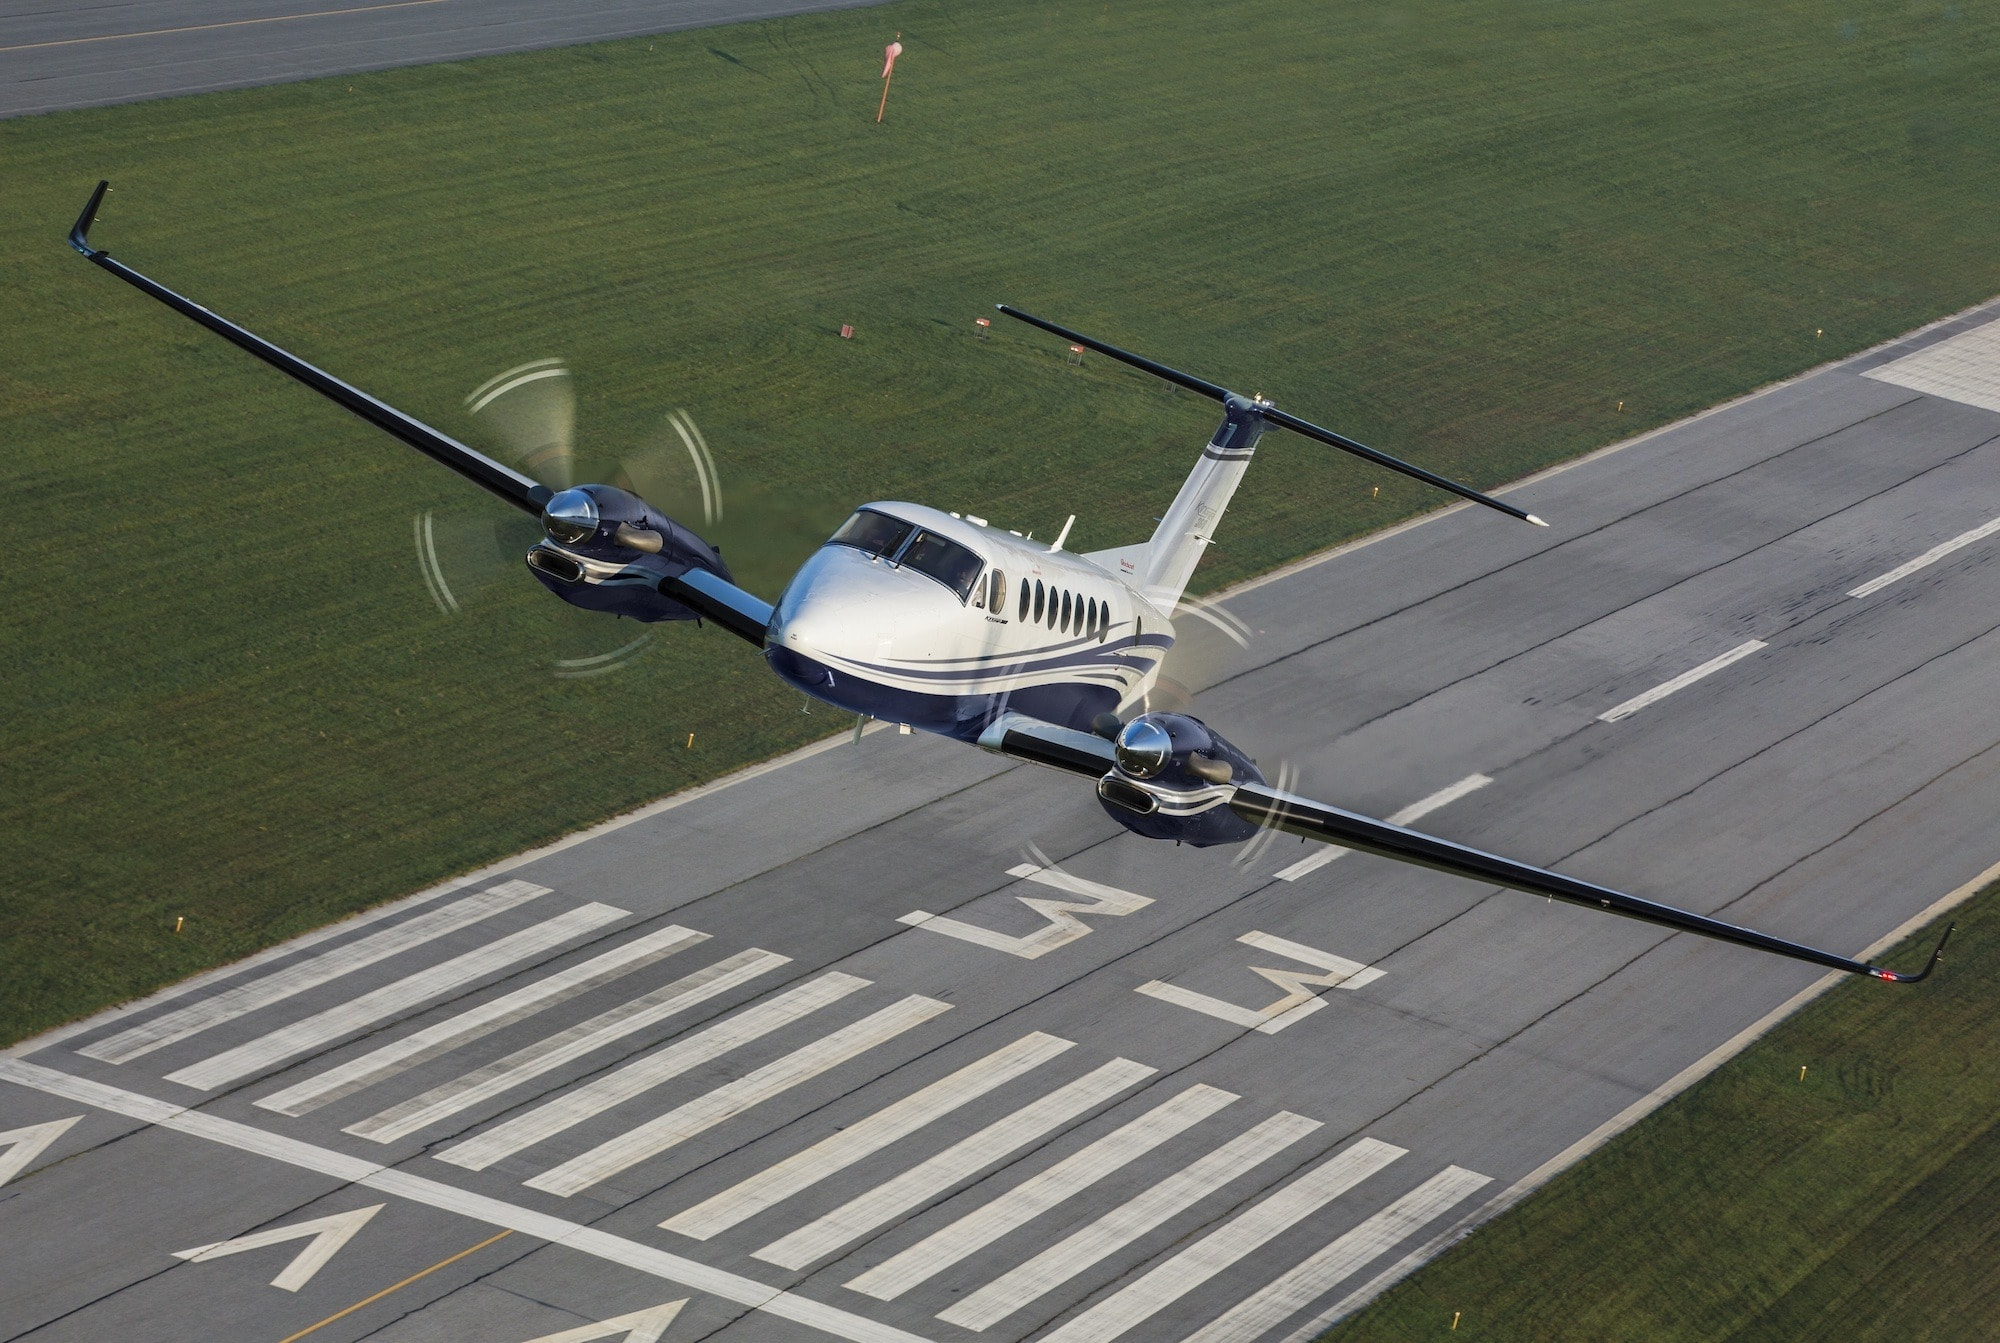 Beechcraft King Air 360 Exterior takeoff from runway